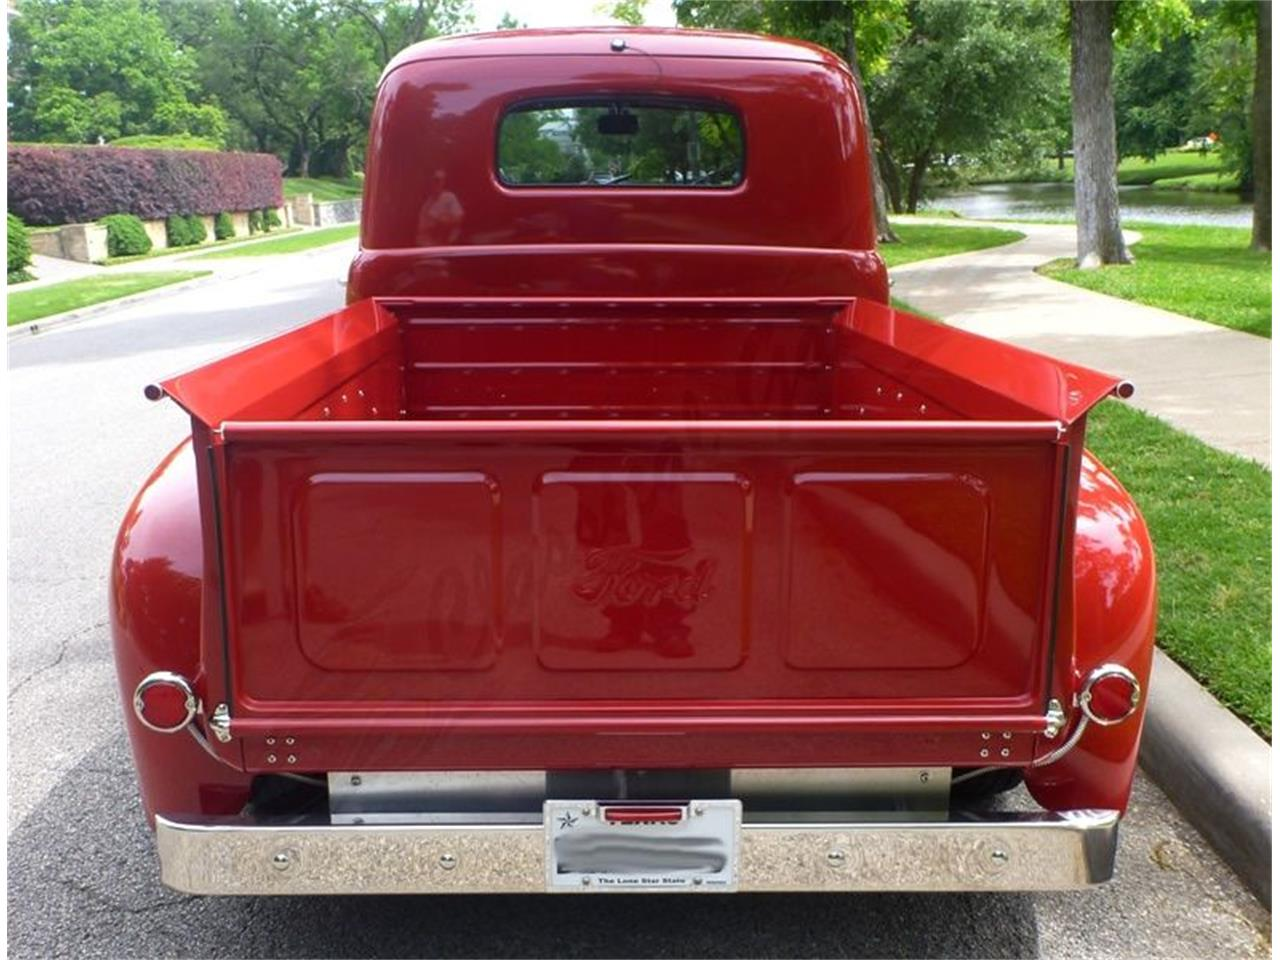 Large Picture of 1948 Ford F1 located in Texas - $149,000.00 - Q6EX